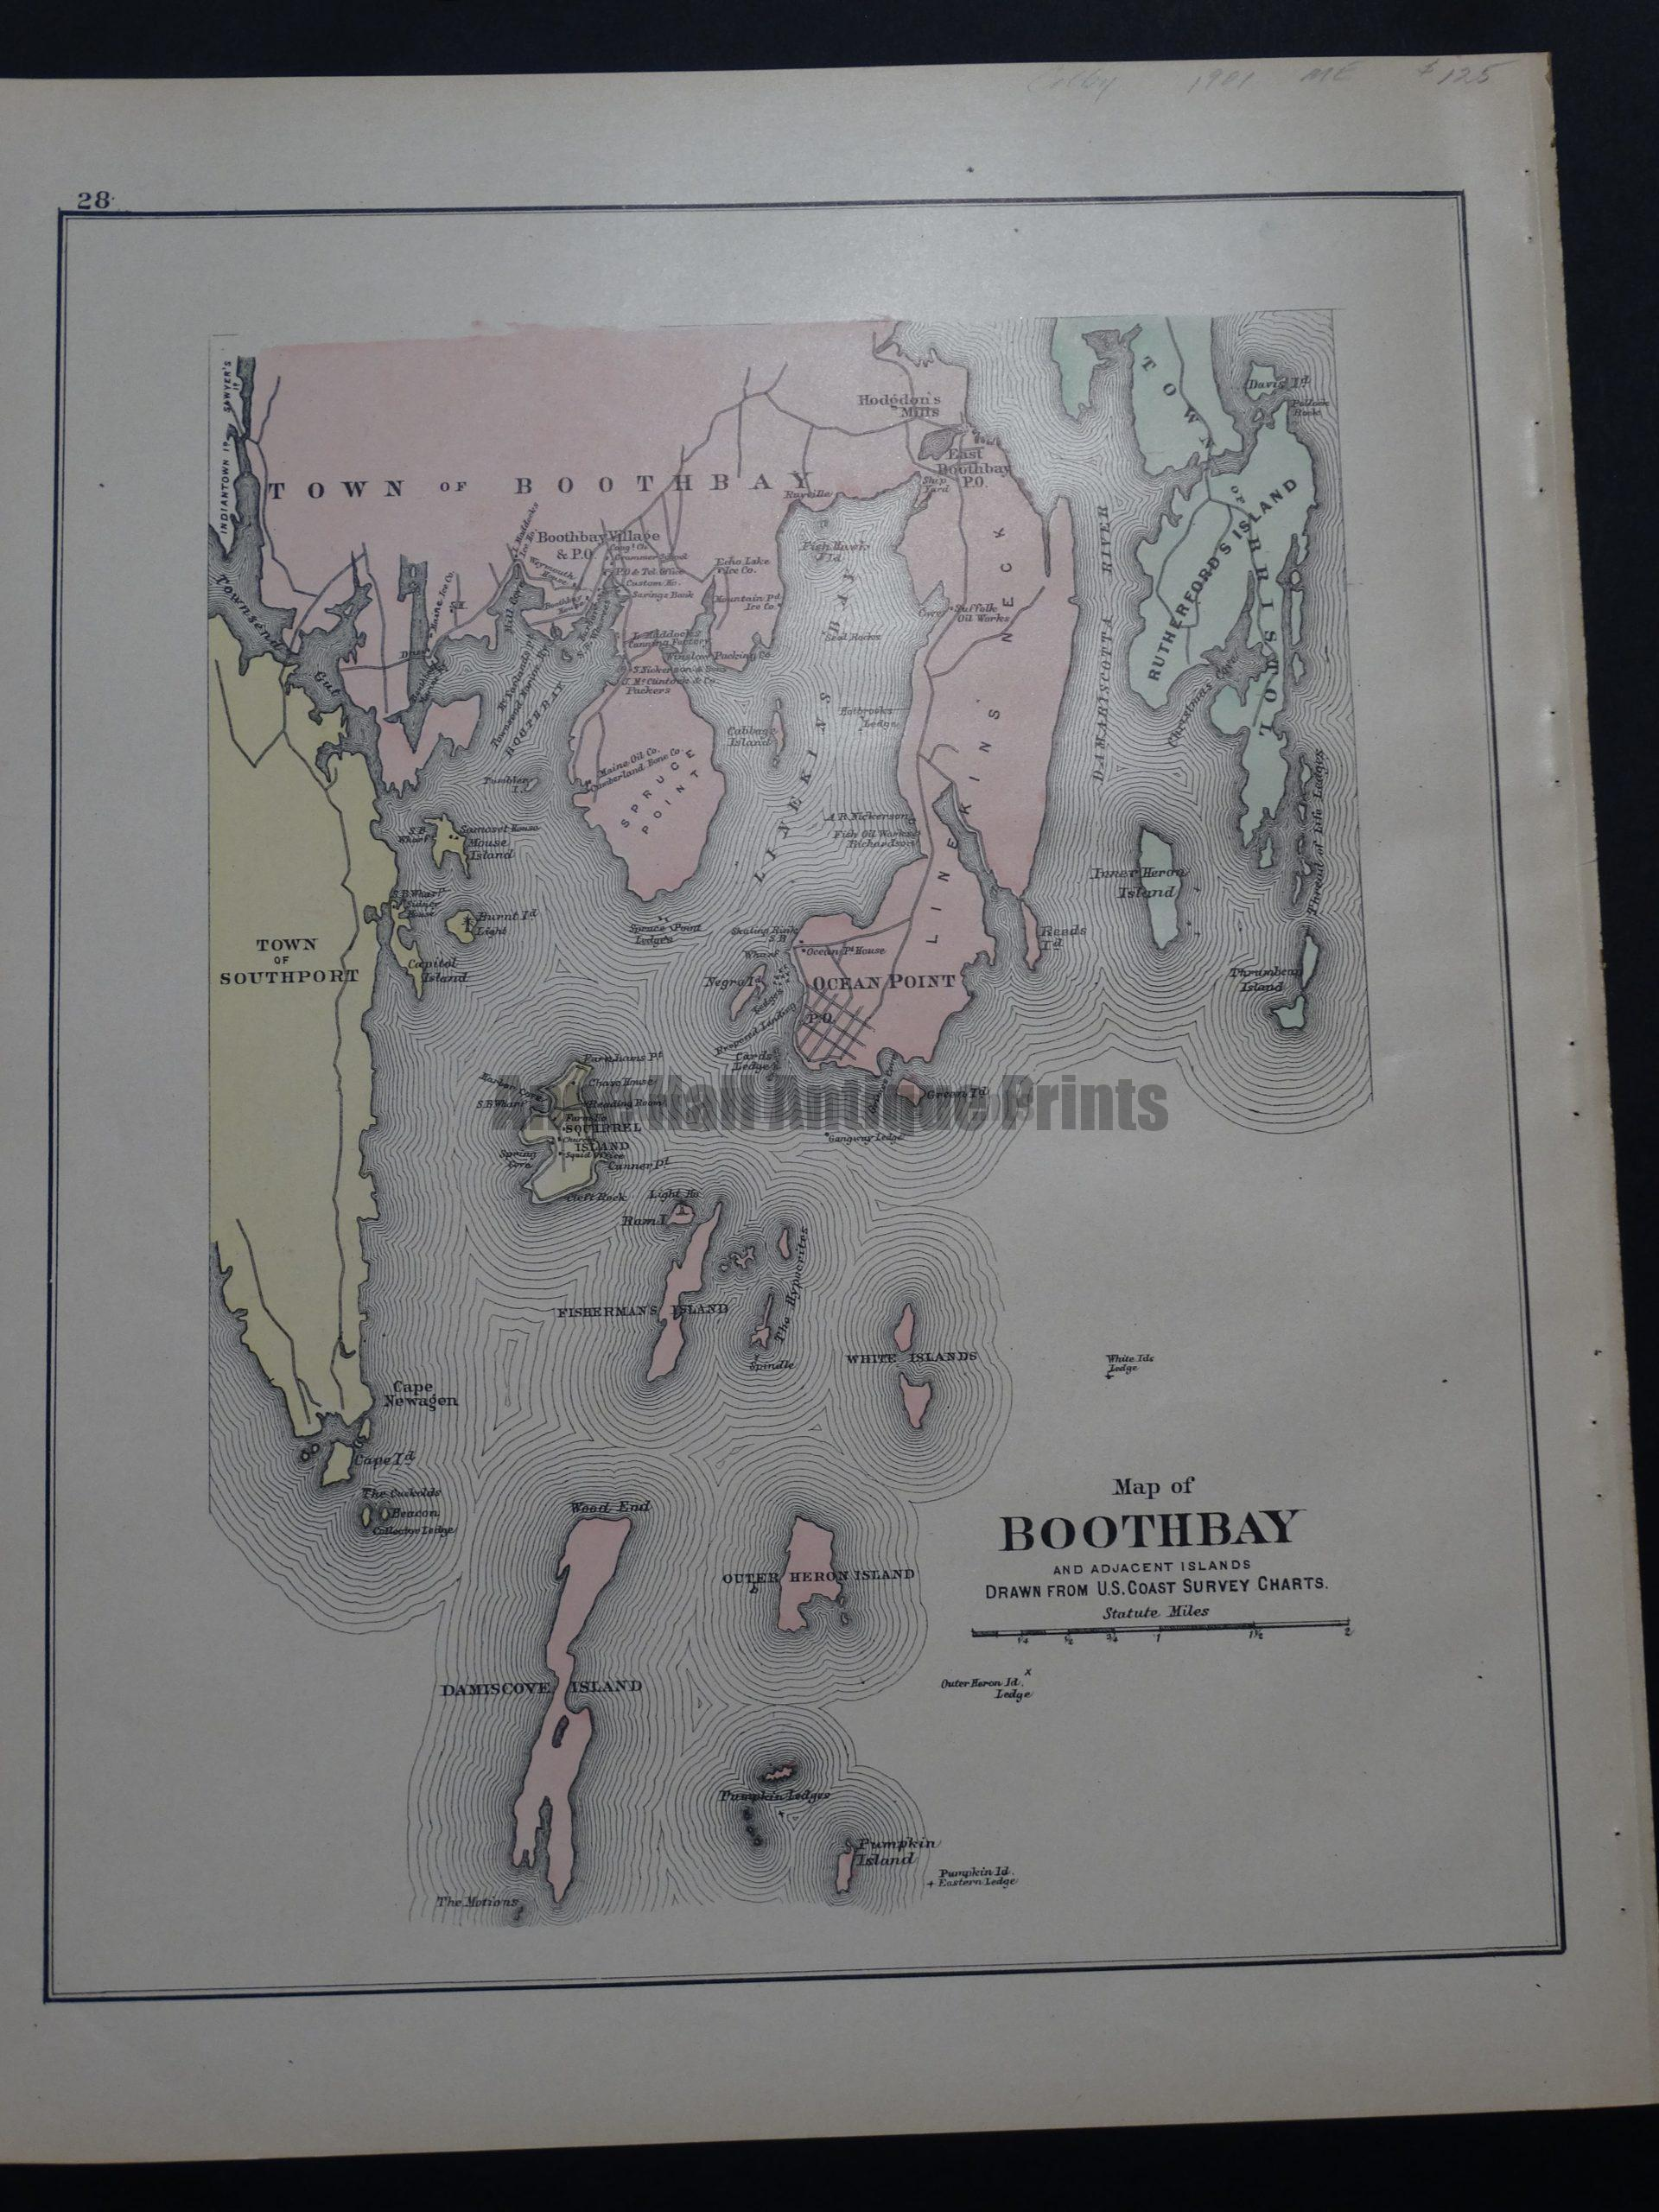 Map of Boothbay and Adjacent Islands